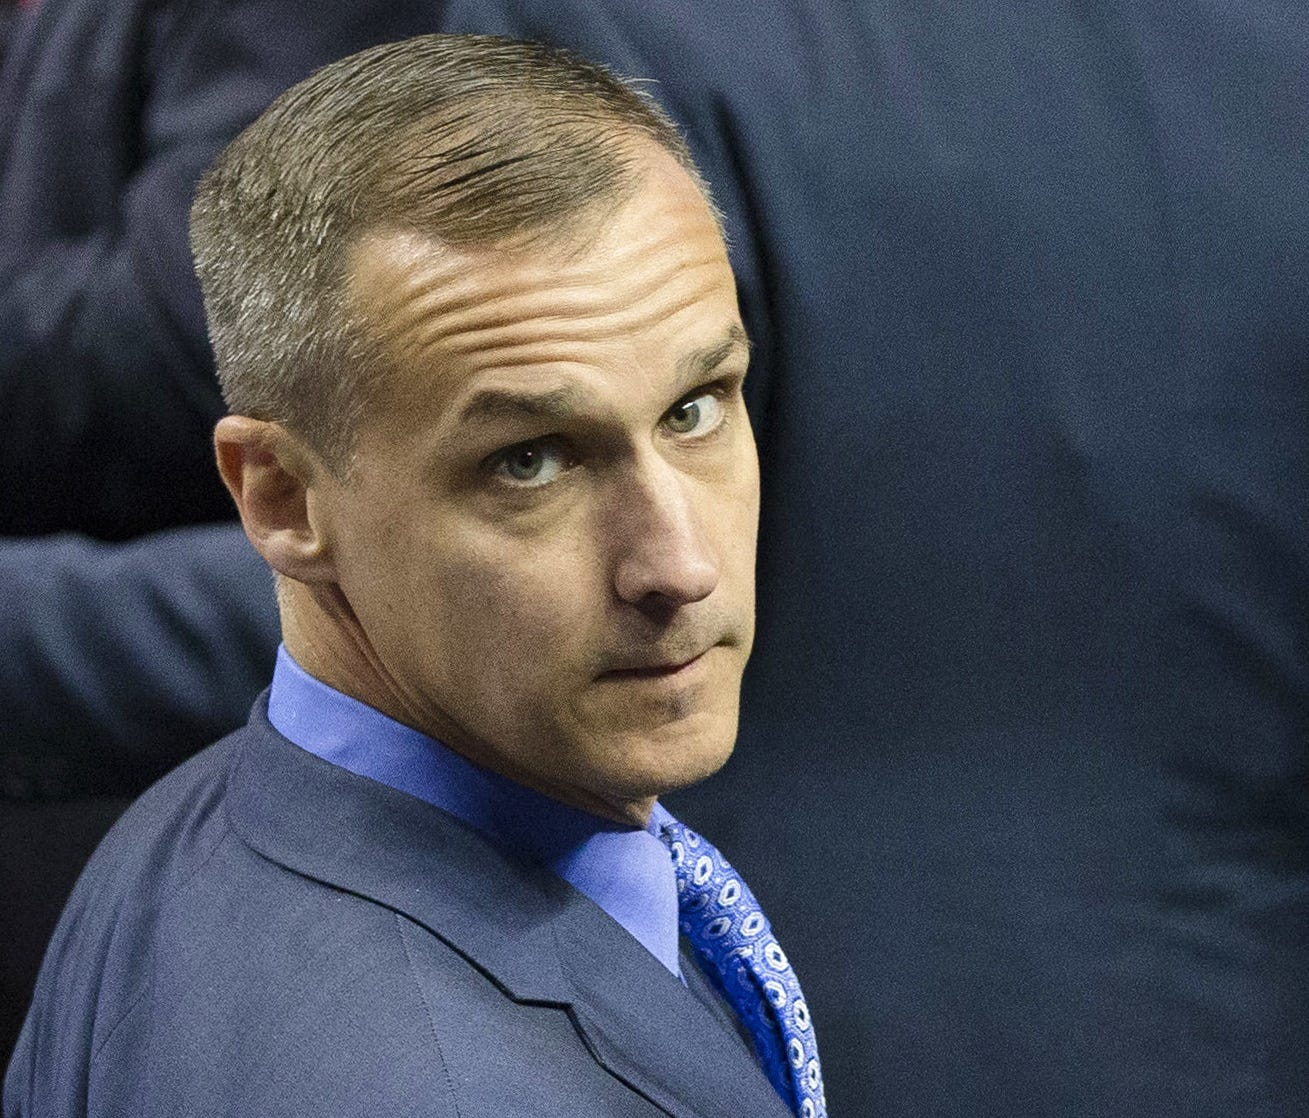 In this April 18, 2016 file photo, Corey Lewandowski, campaign manager for Republican presidential candidate Donald Trump, appears at a campaign stop at the First Niagara Center in Buffalo, N.Y.